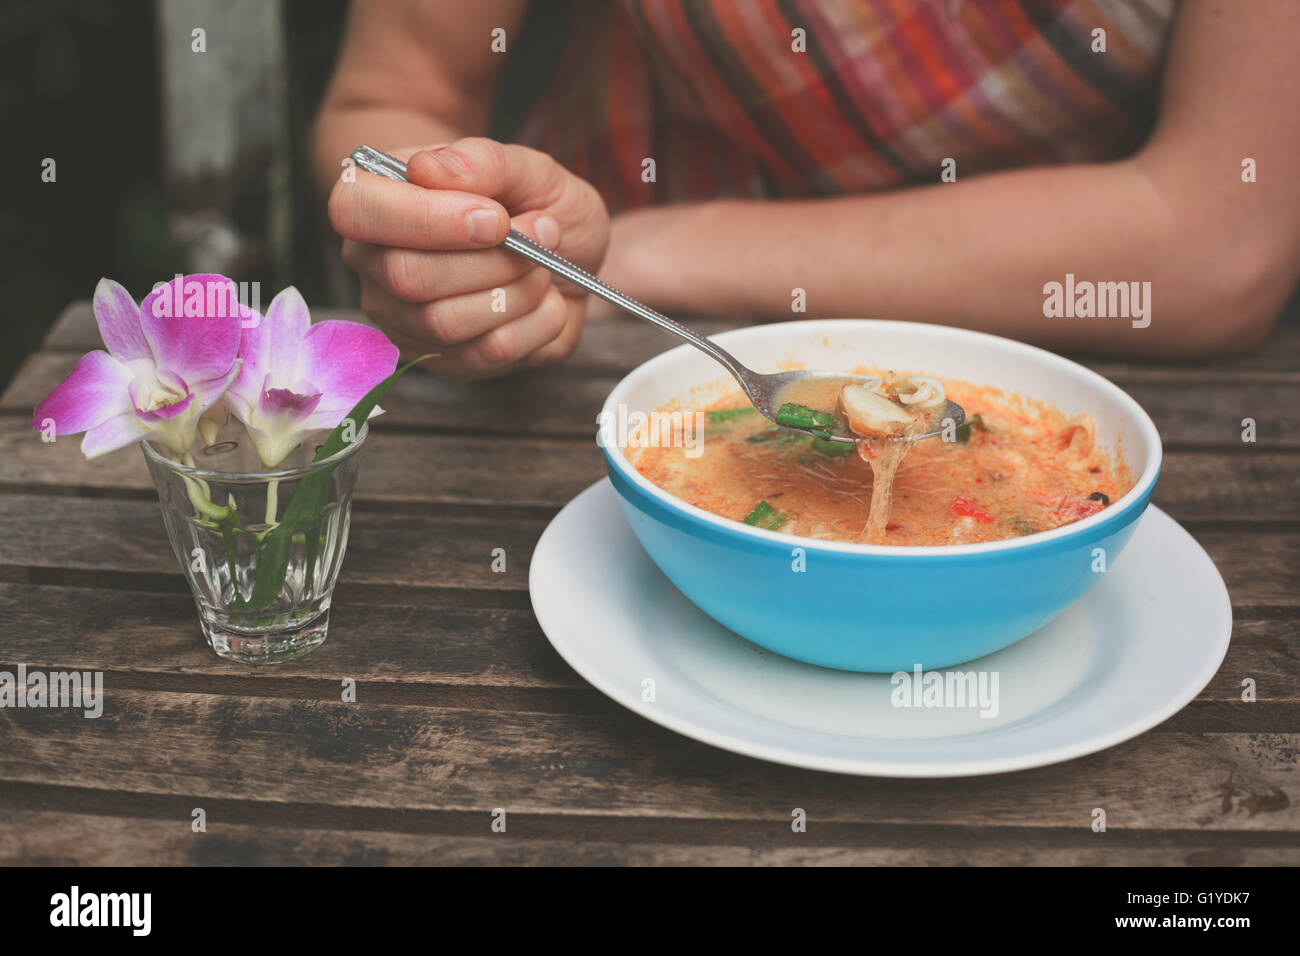 A young woman is eating tom yum soup at a table outside - Stock Image